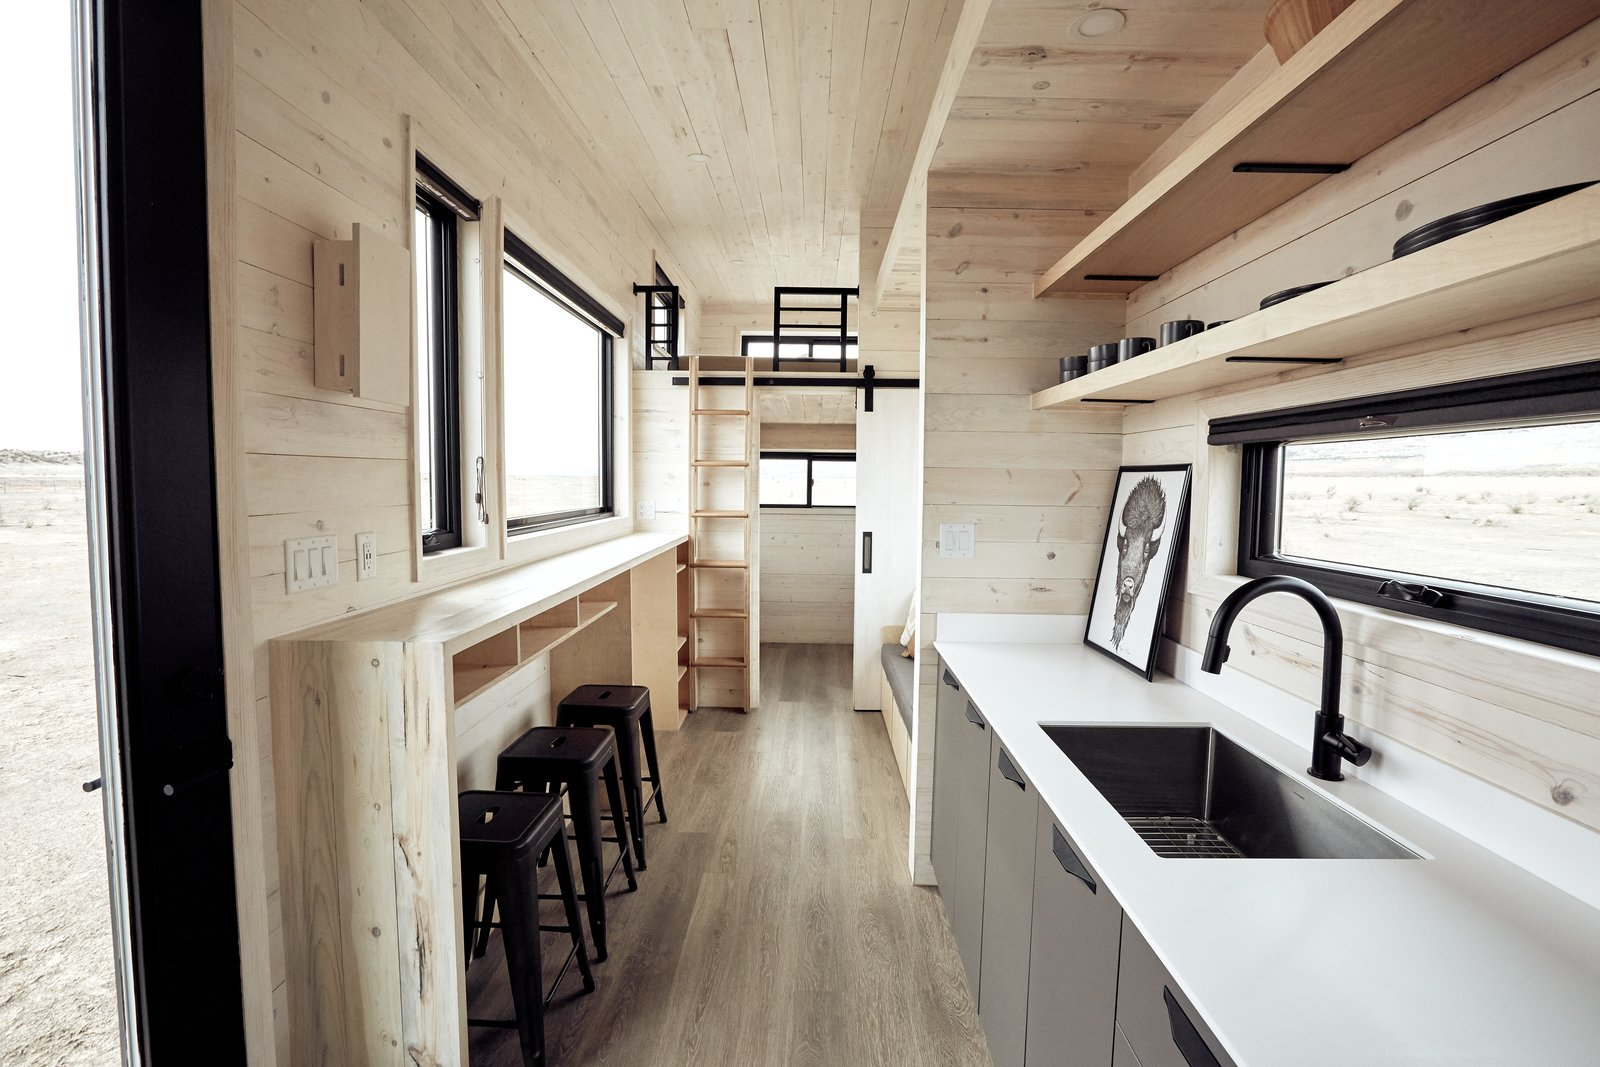 Kitchen, Ceiling Lighting, and Undermount Sink Ample natural light enters via the multiple windows. As you can see above, stylish cabin vibes flood the home.    Photo 7 of 14 in This Sleek Travel Trailer Is Practically a Cabin on Wheels from Land Ark RV - Drake